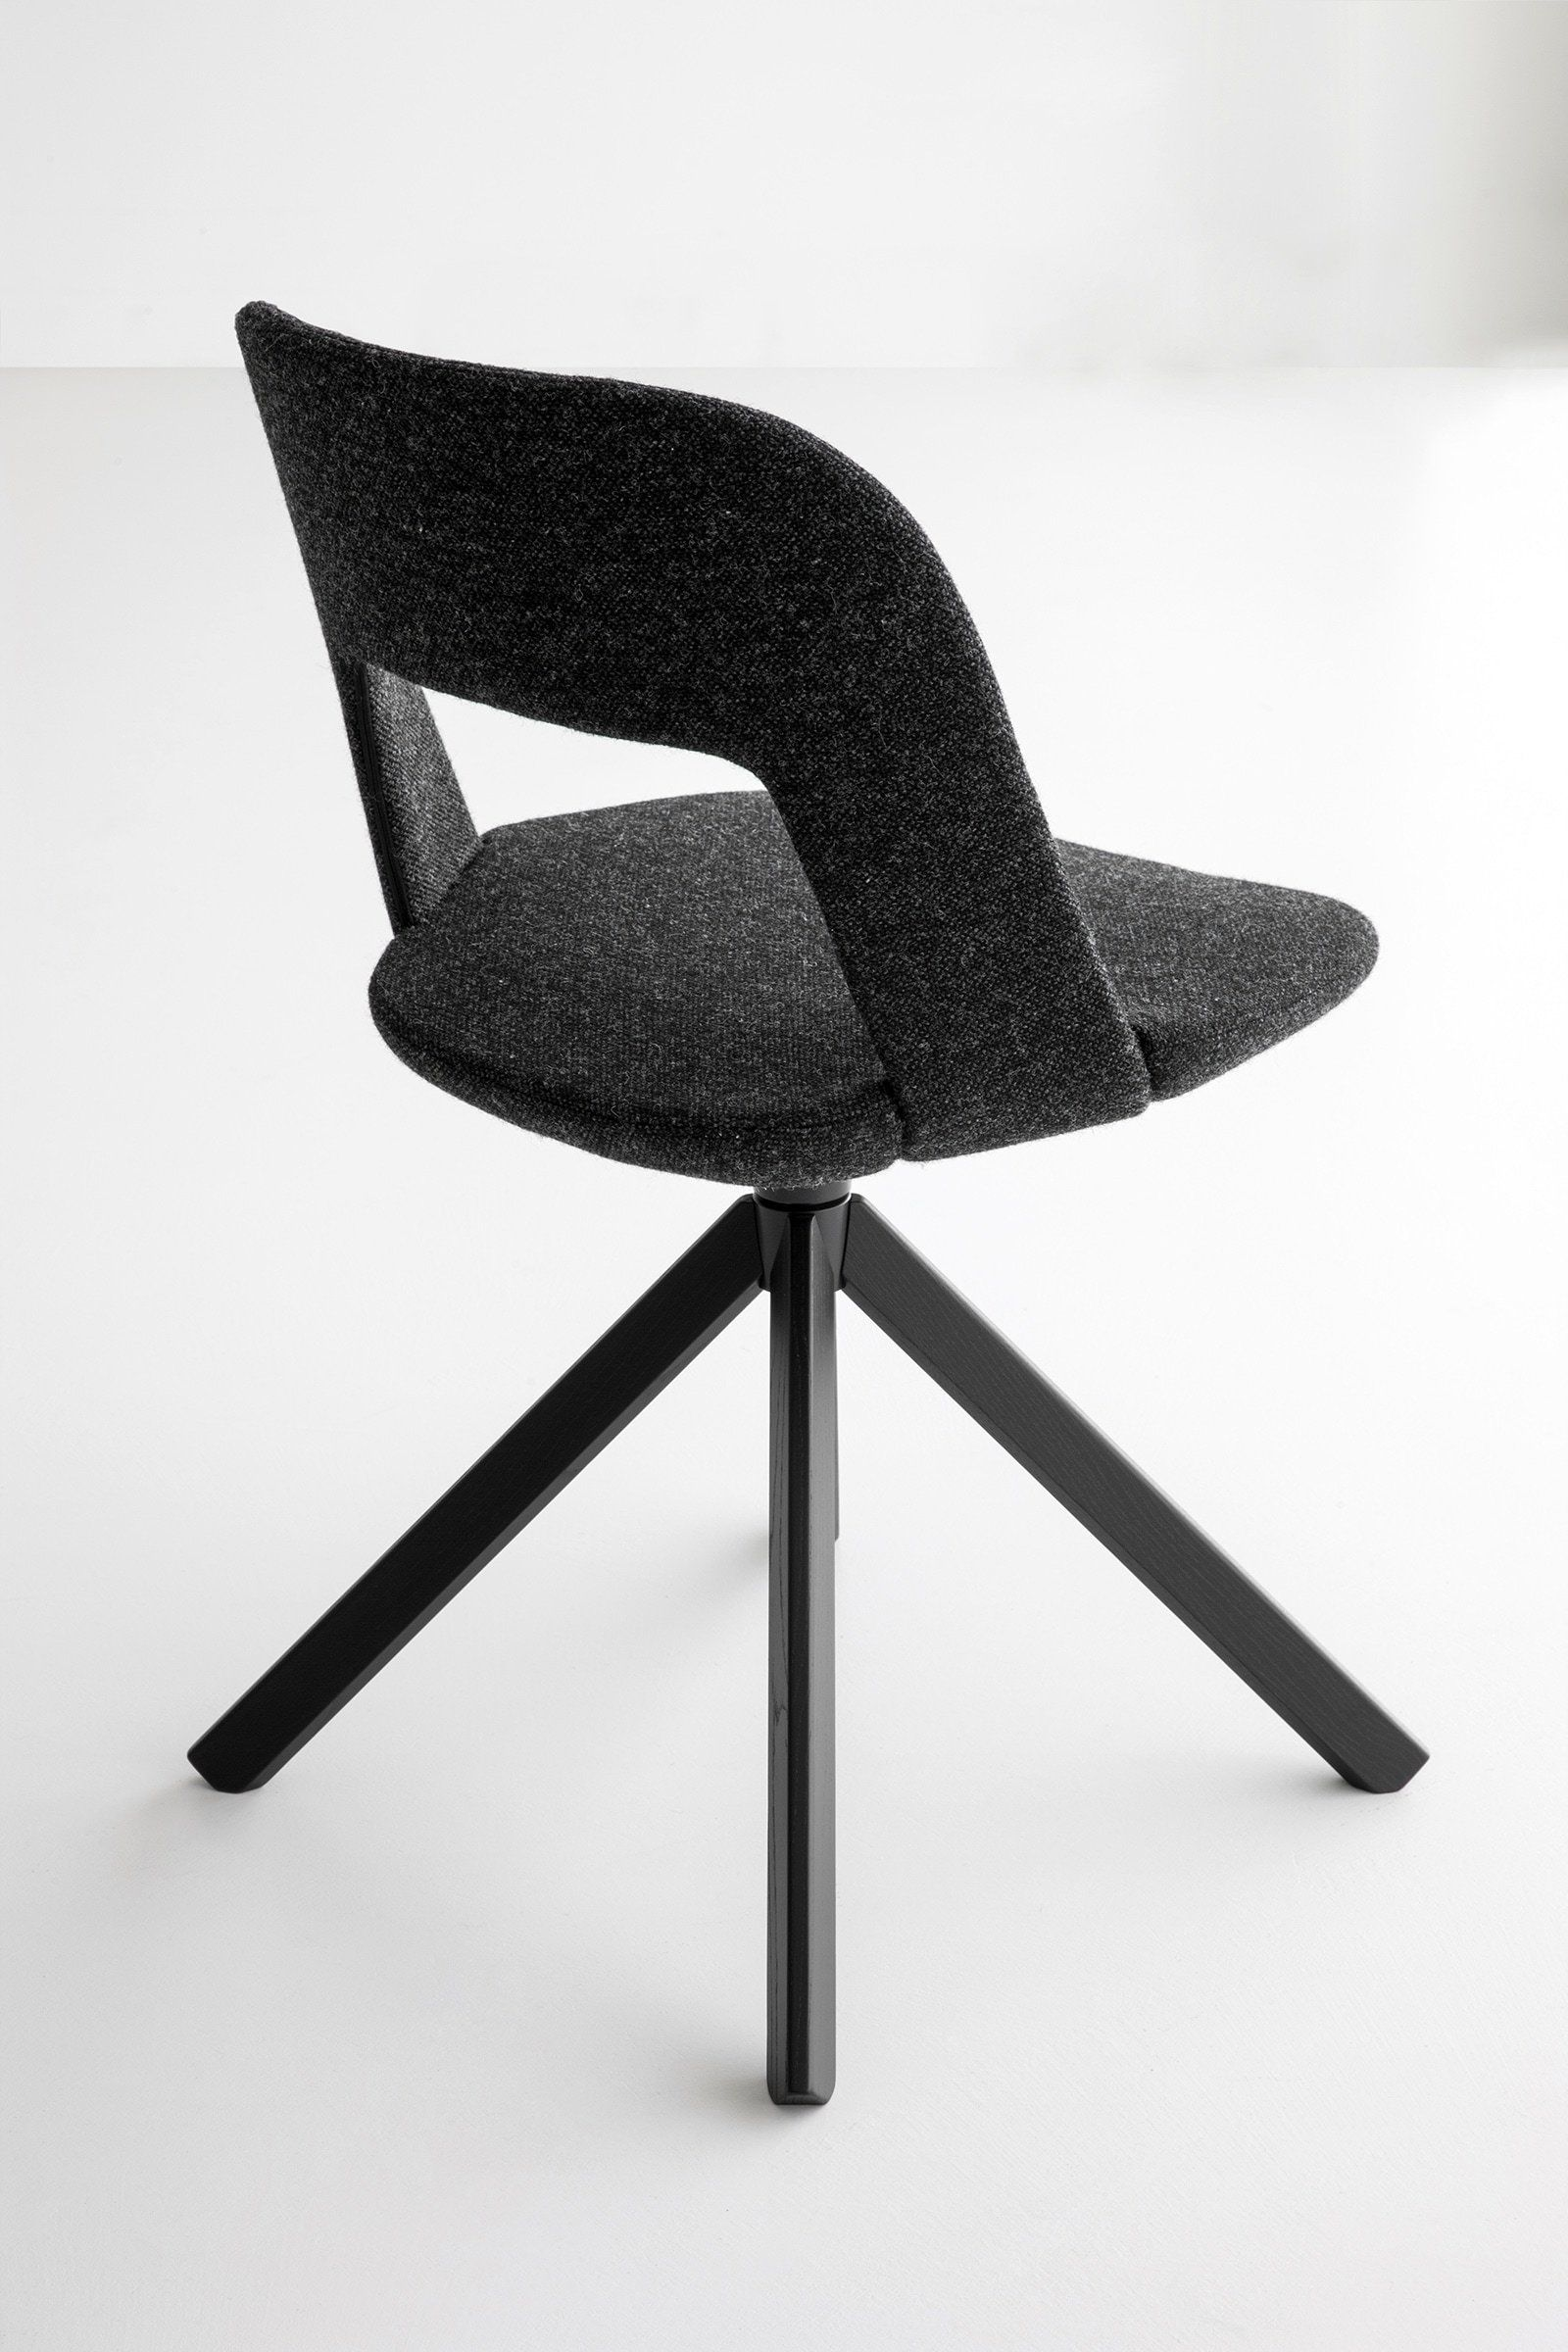 Launched Last Year By The Italian Furniture Company Lapalma, Arco Is A Chic  And Minimal Chair Brilliantly Designed By Italian Product Designer Frances.